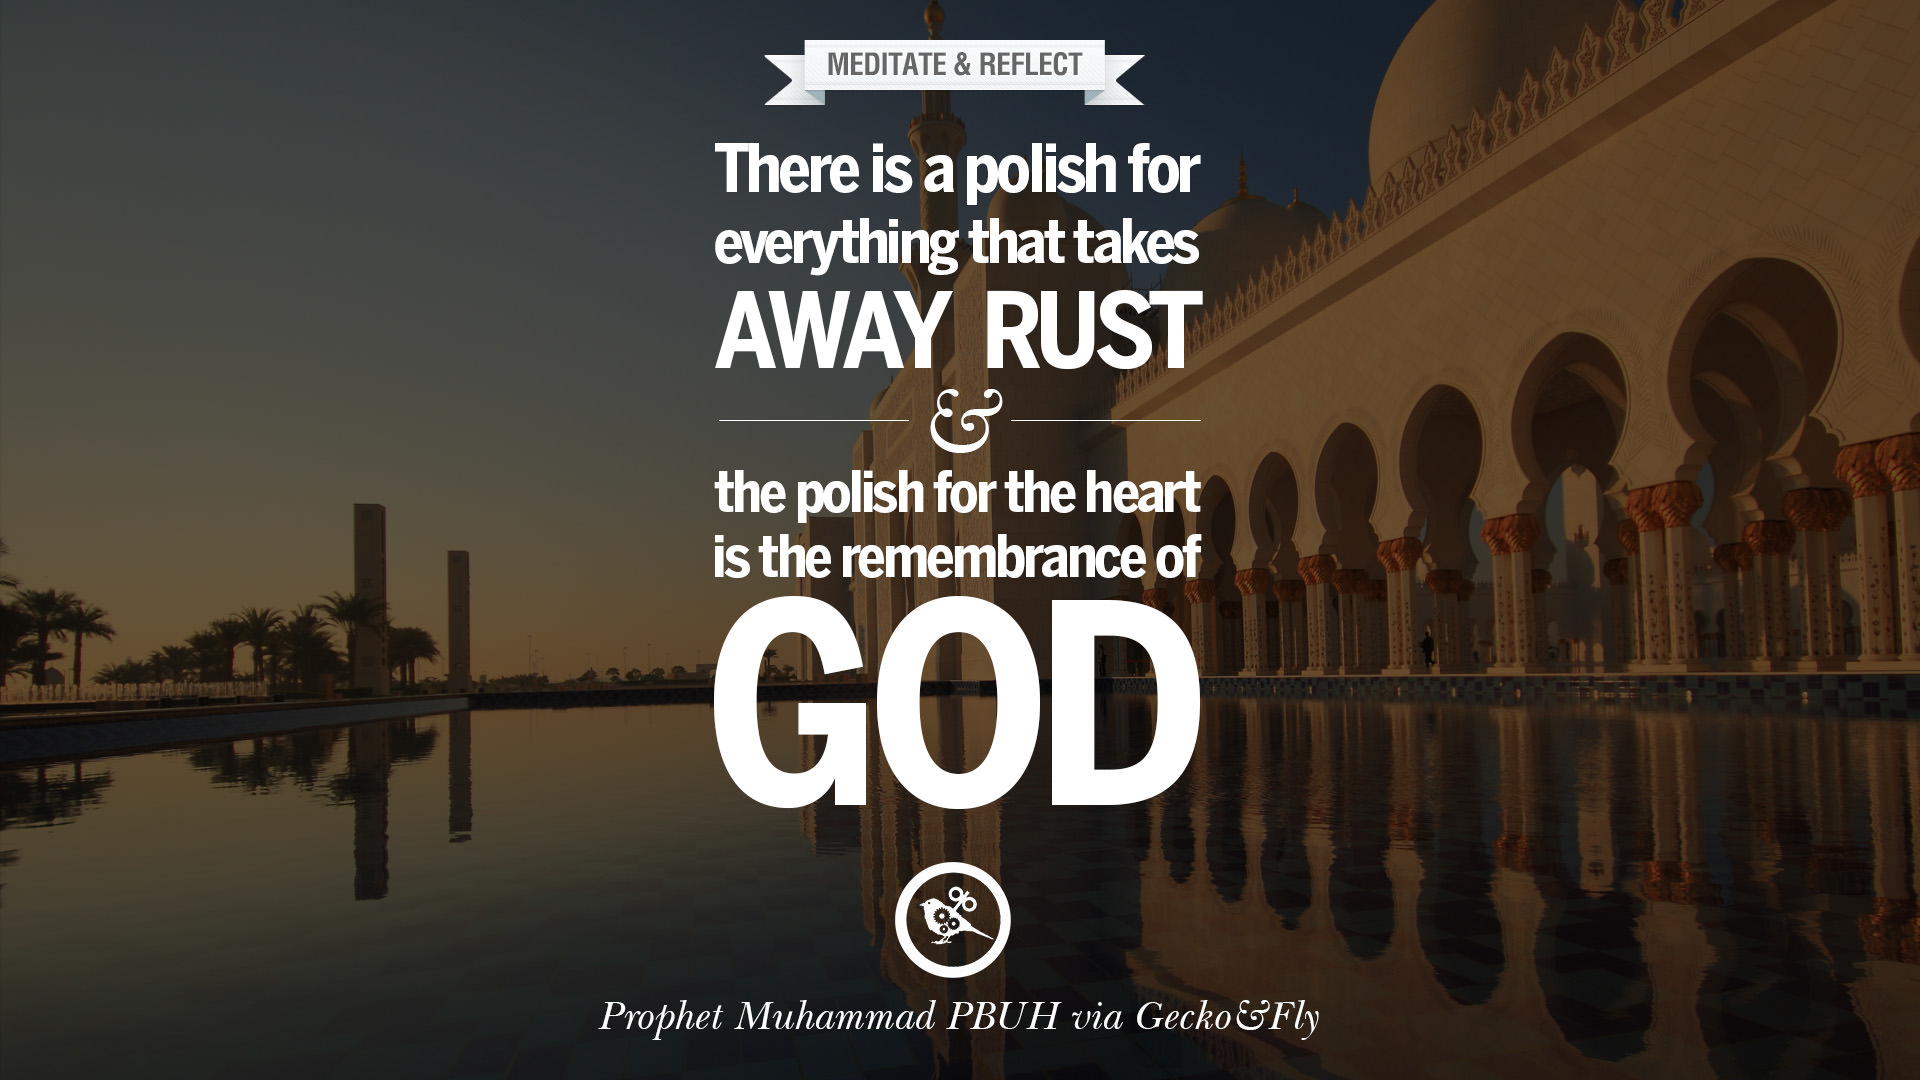 There is a polish for everything that takes away rust and the polish for the heart is the remembrance of god